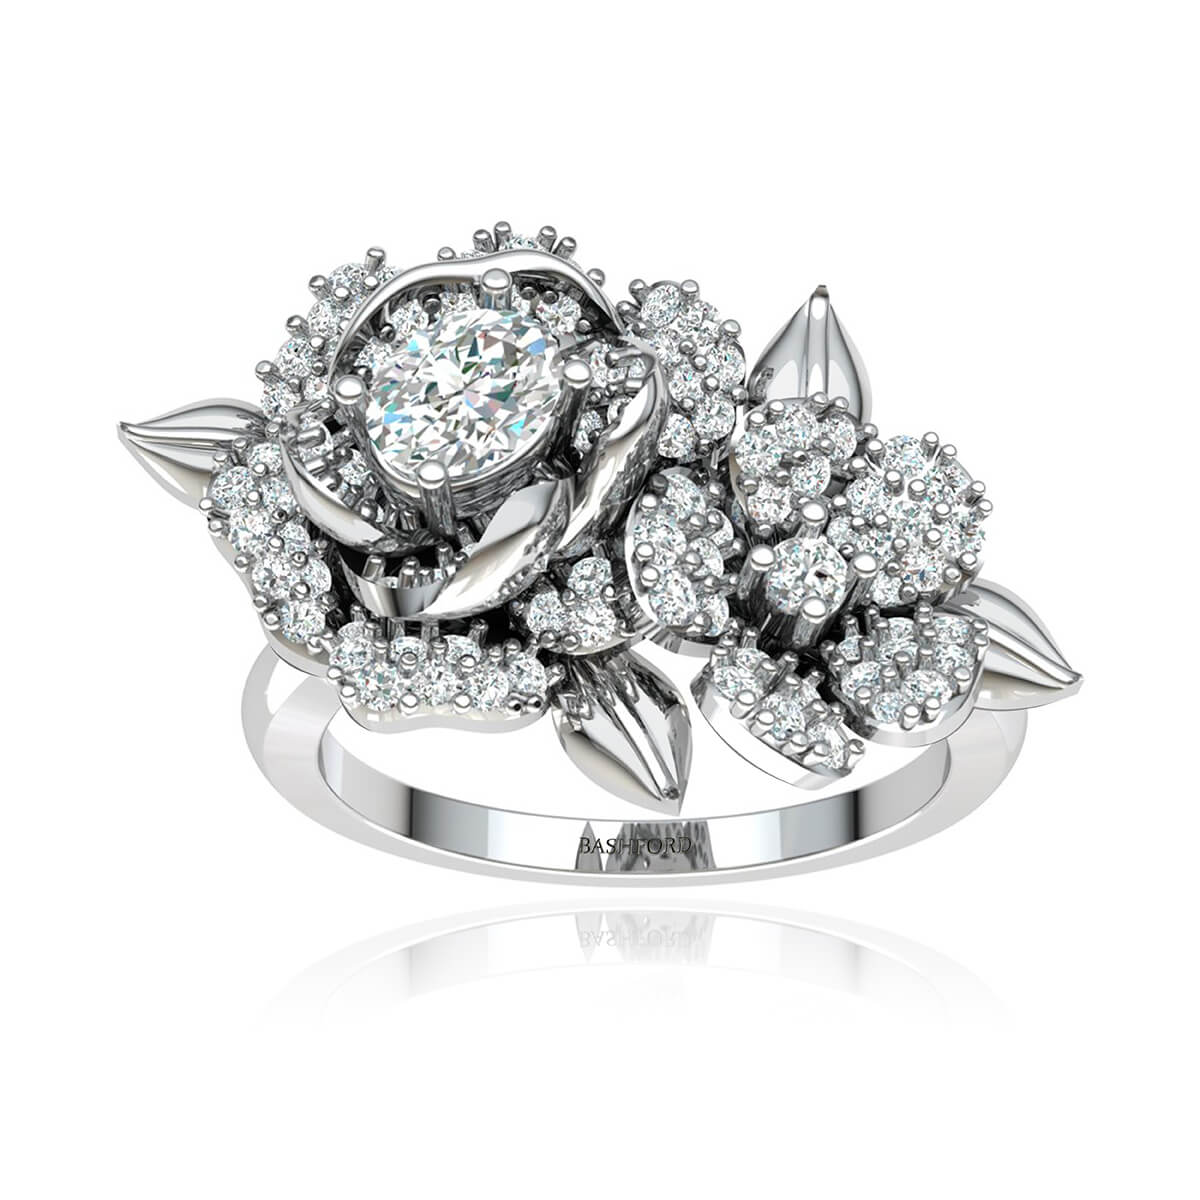 The Gardenia Diamond Ring